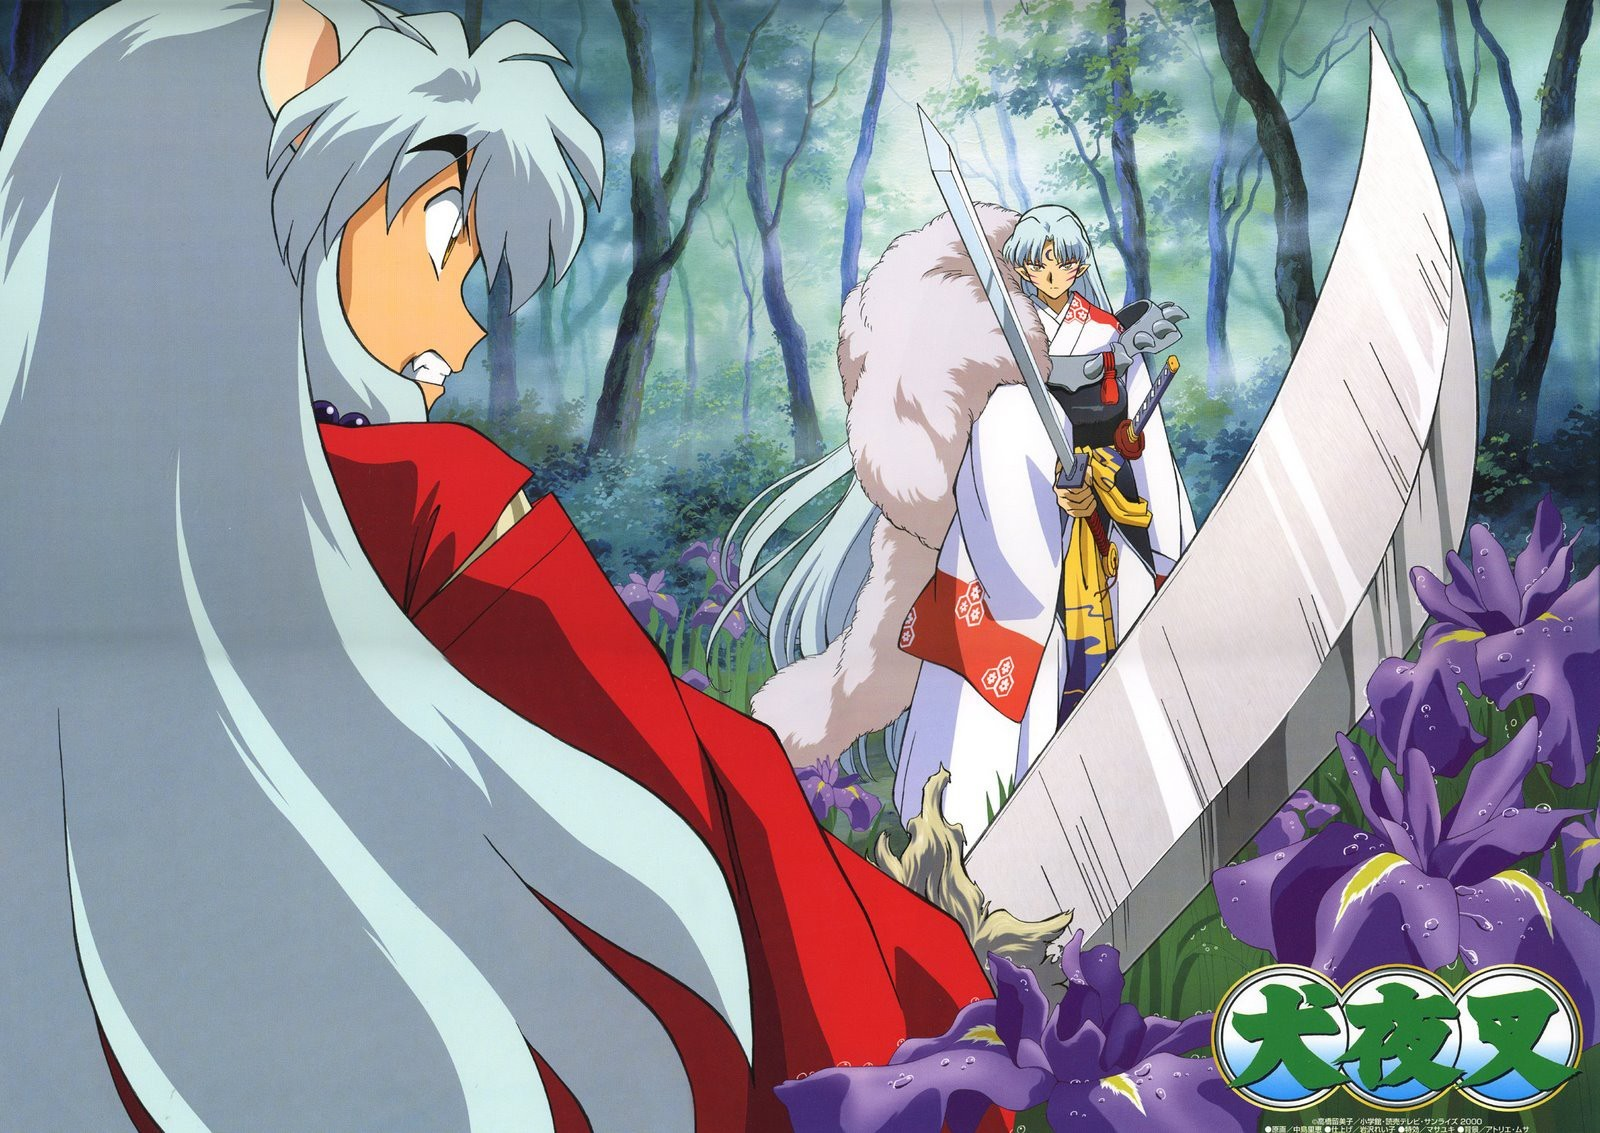 kagome kagura Sesshomaru inuyasha HD Wallpaper